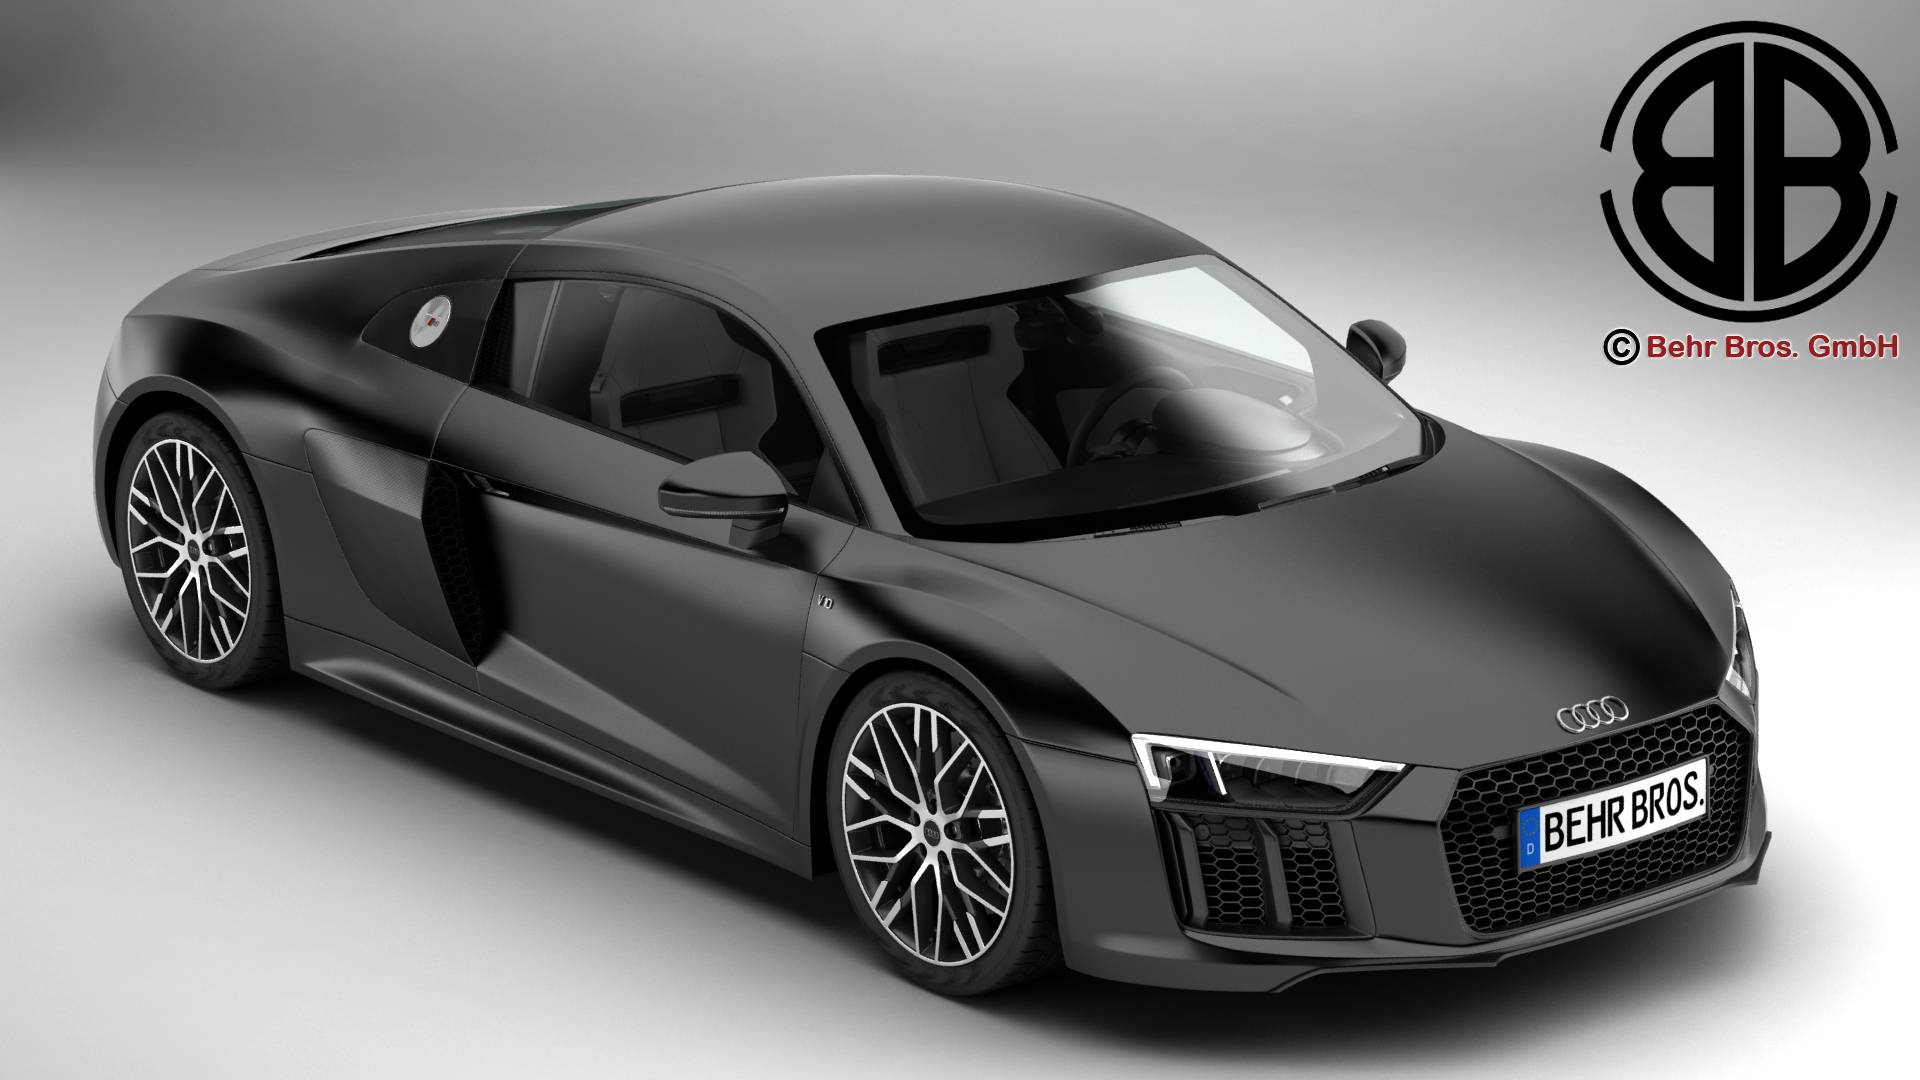 audi r8 v10 2016 3d model buy audi r8 v10 2016 3d model. Black Bedroom Furniture Sets. Home Design Ideas